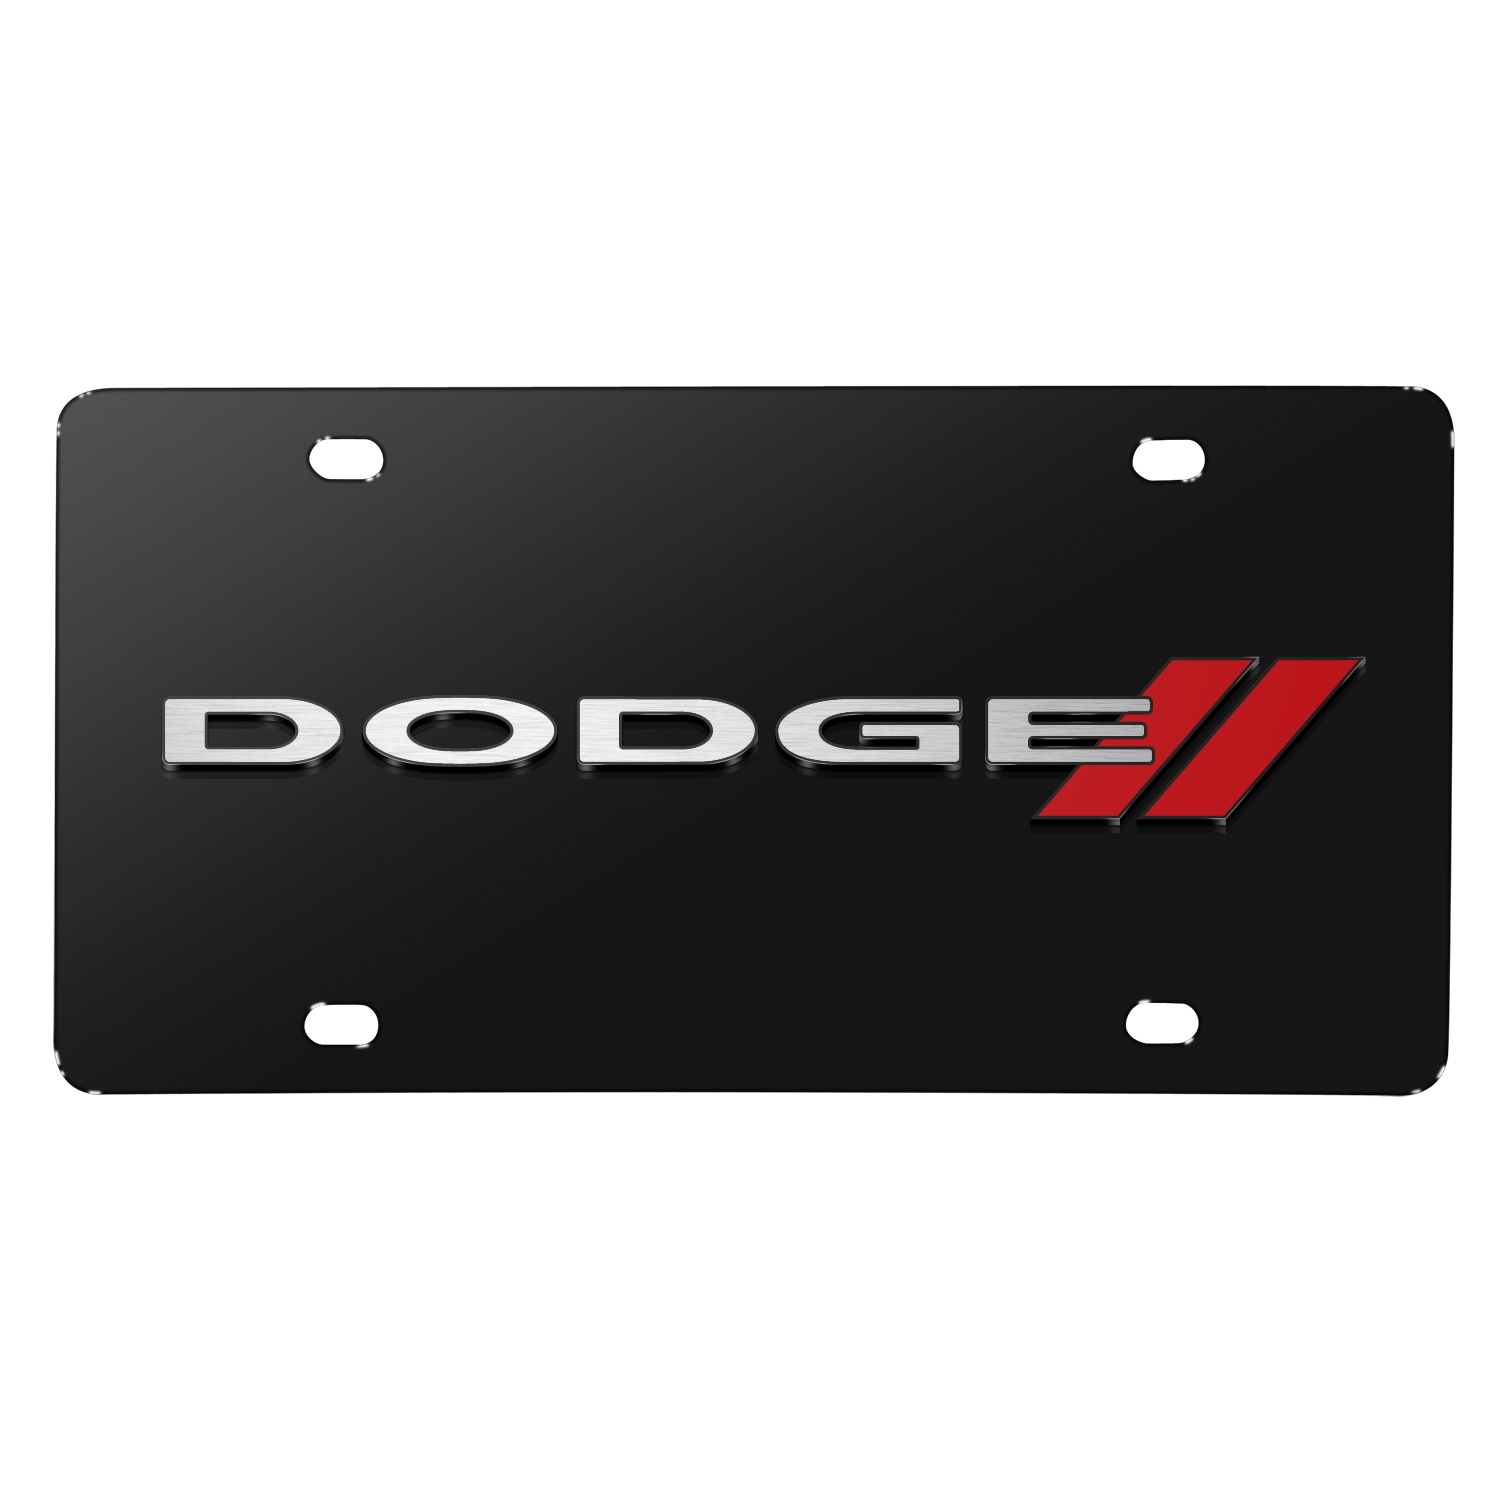 Dodge 3D Logo on Black Stainless Steel License Plate